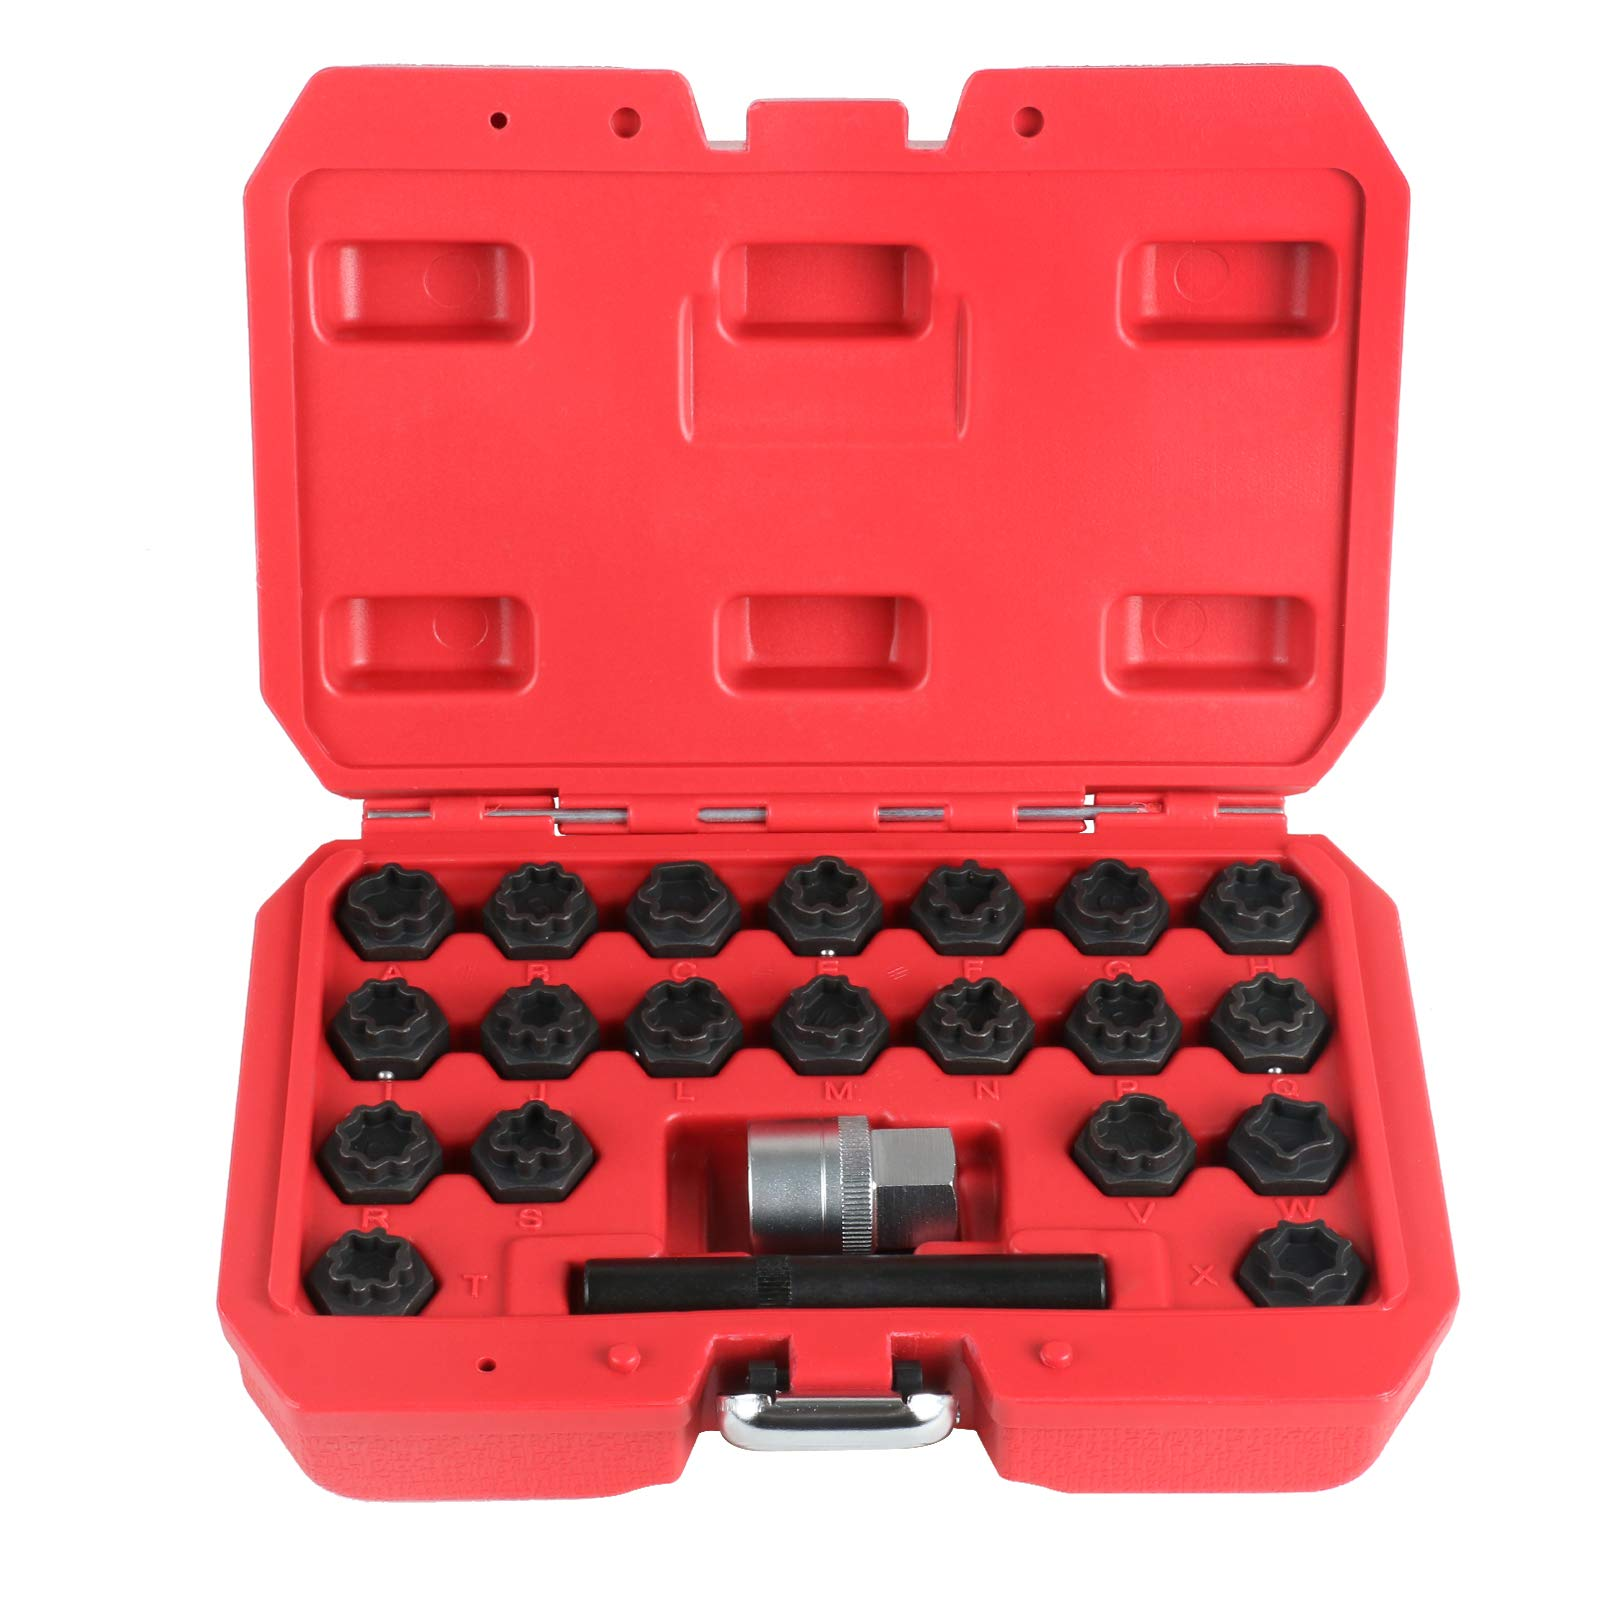 BELEY 22pcs Wheel Lock Lug Nuts Removal Set, Automotive Wheel Anti-Theft Screws Remover Socket Keys Remover Kit for Audi